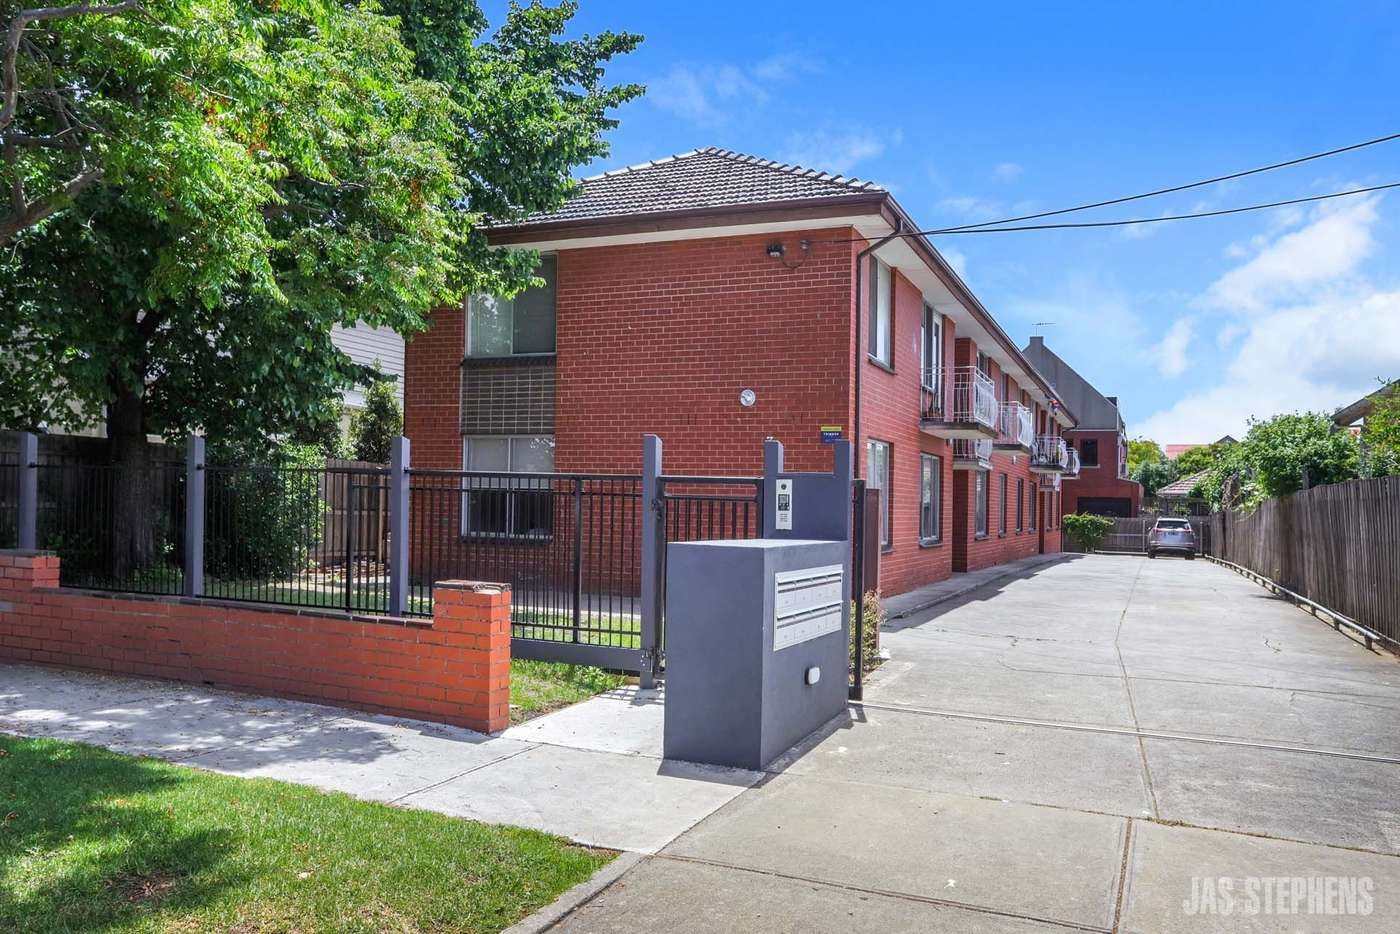 Main view of Homely unit listing, 8/32 Hobbs Street, Seddon VIC 3011